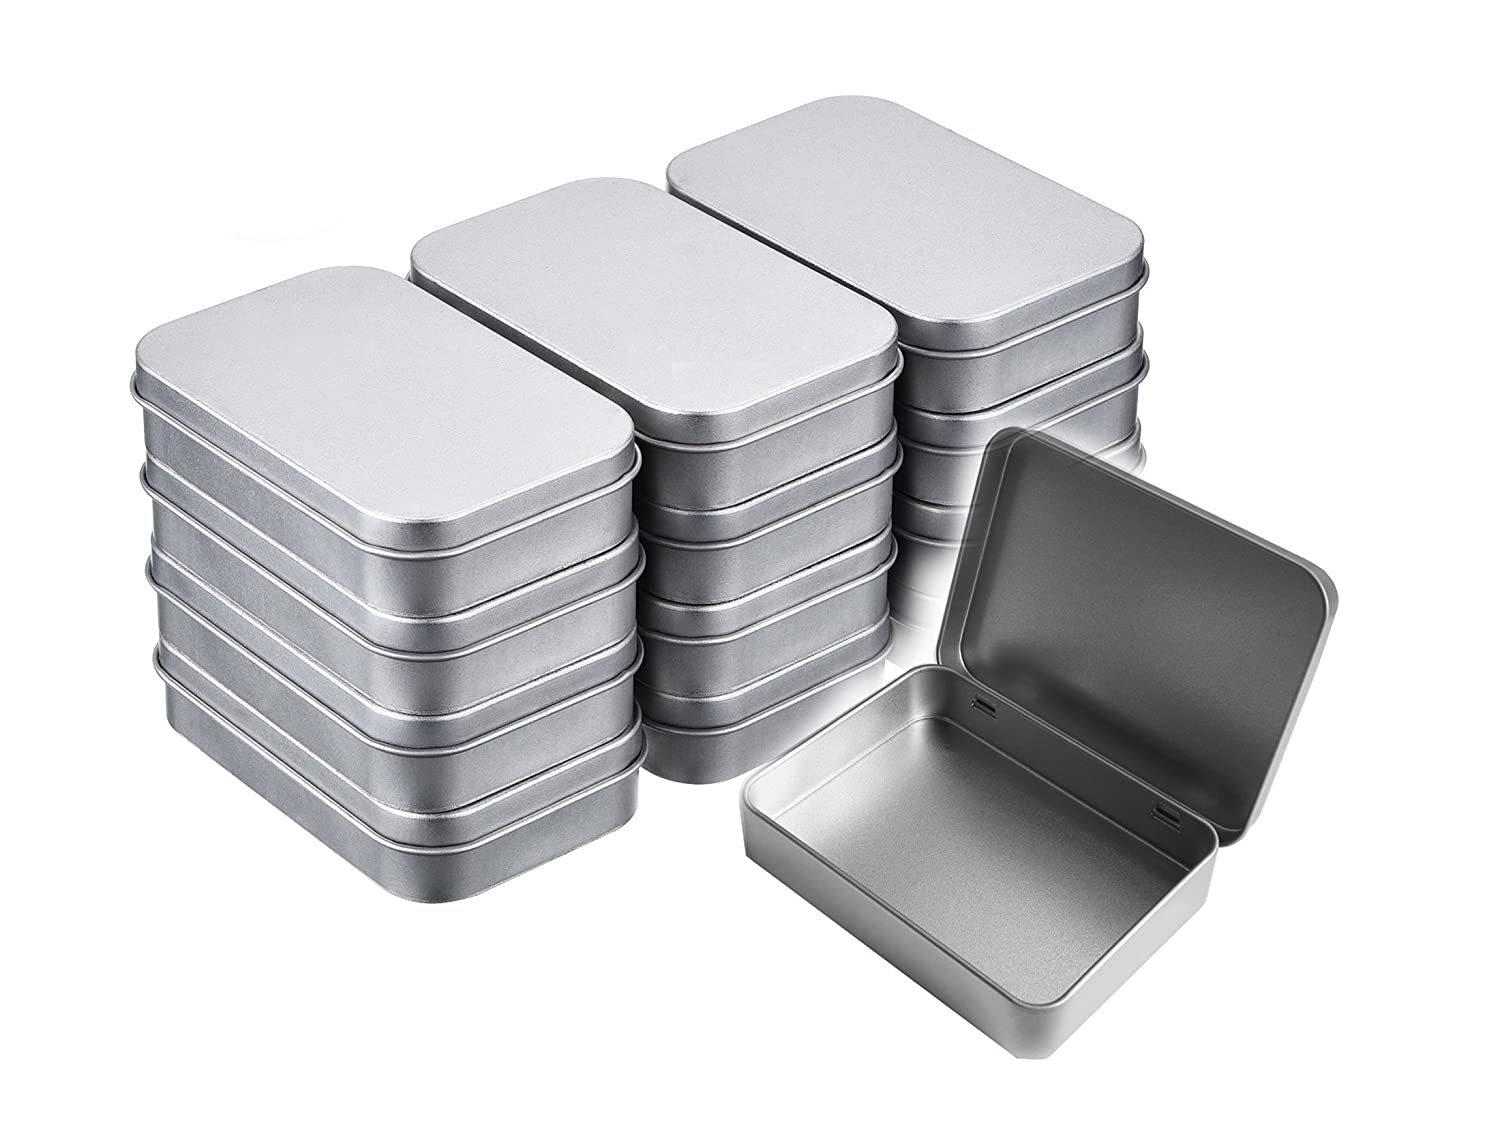 Walkingpround 12 Pack Empty Tin Box Storage Containers Metal Silver Rectangular for Candy Tins Gift Card Holder Box